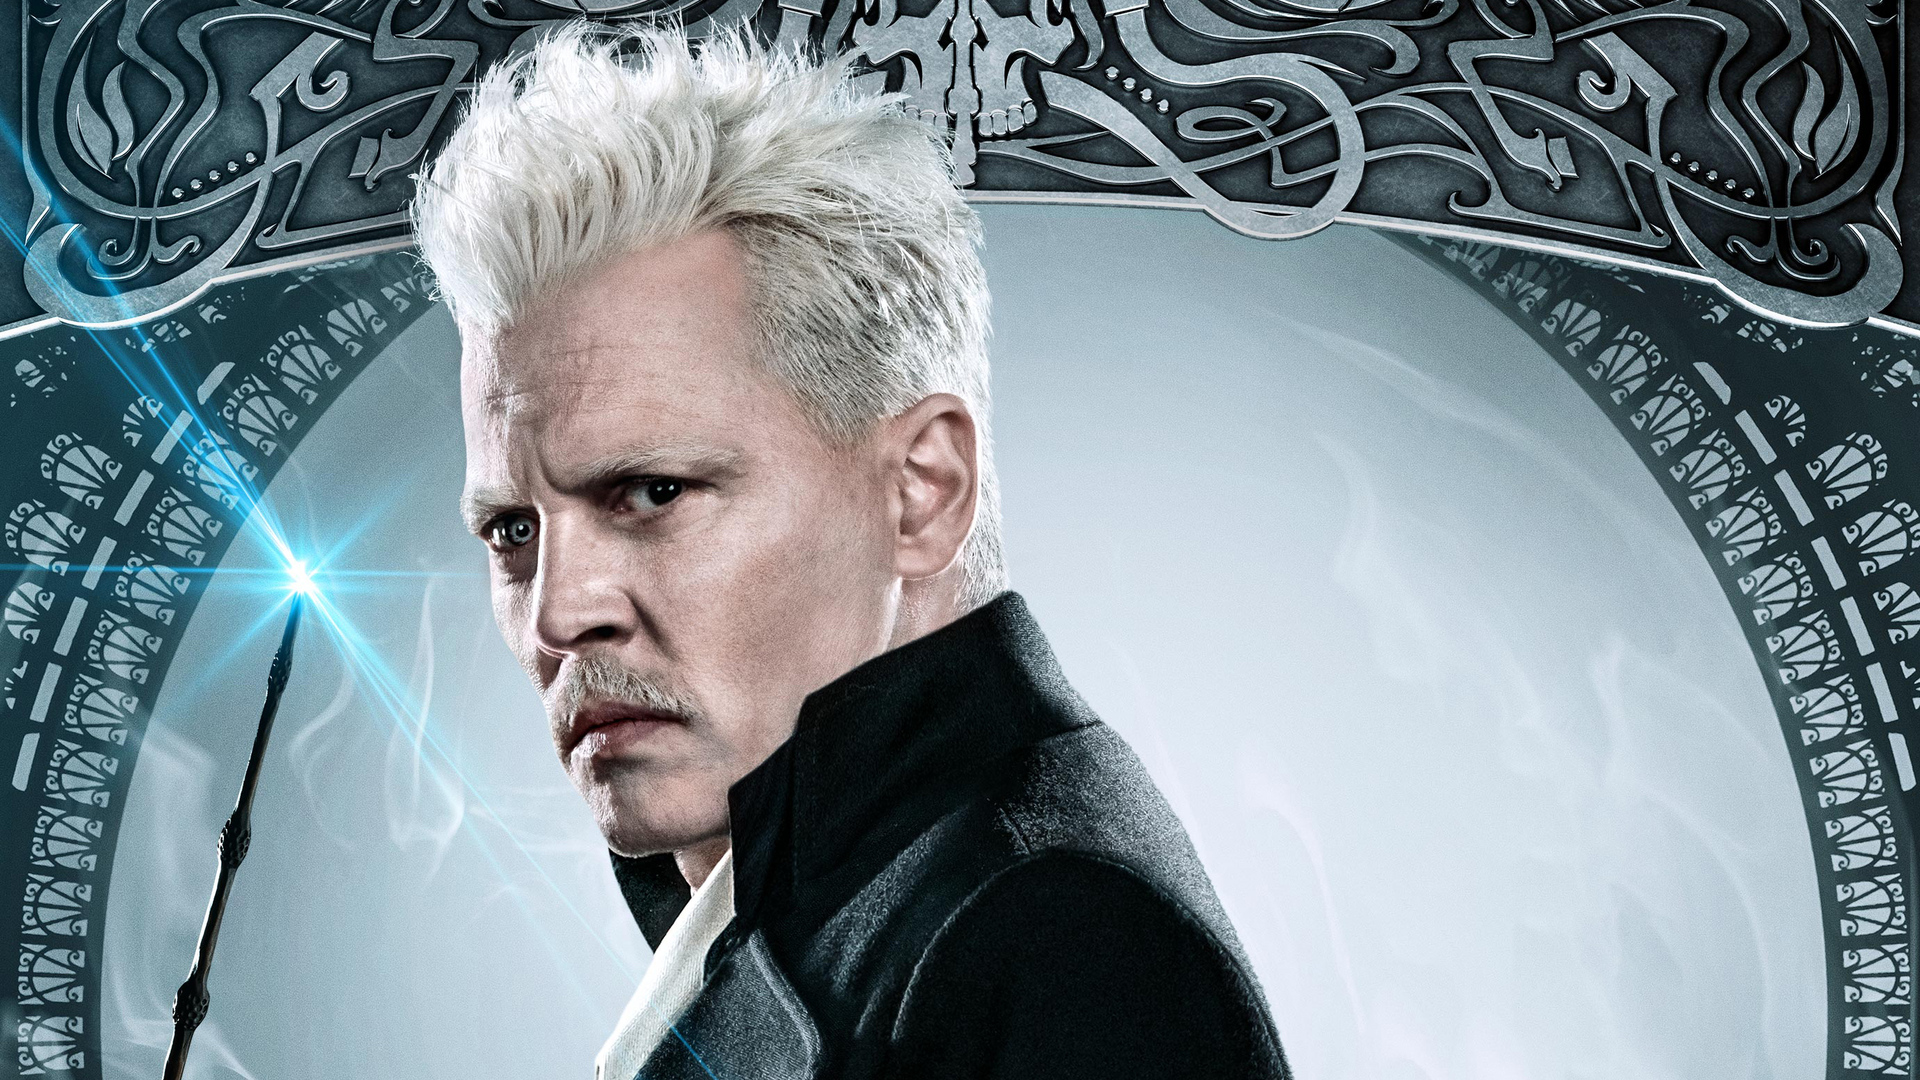 1920x1080 Johnny Depp As Gellert Grindelwald In Fantastic Beasts The